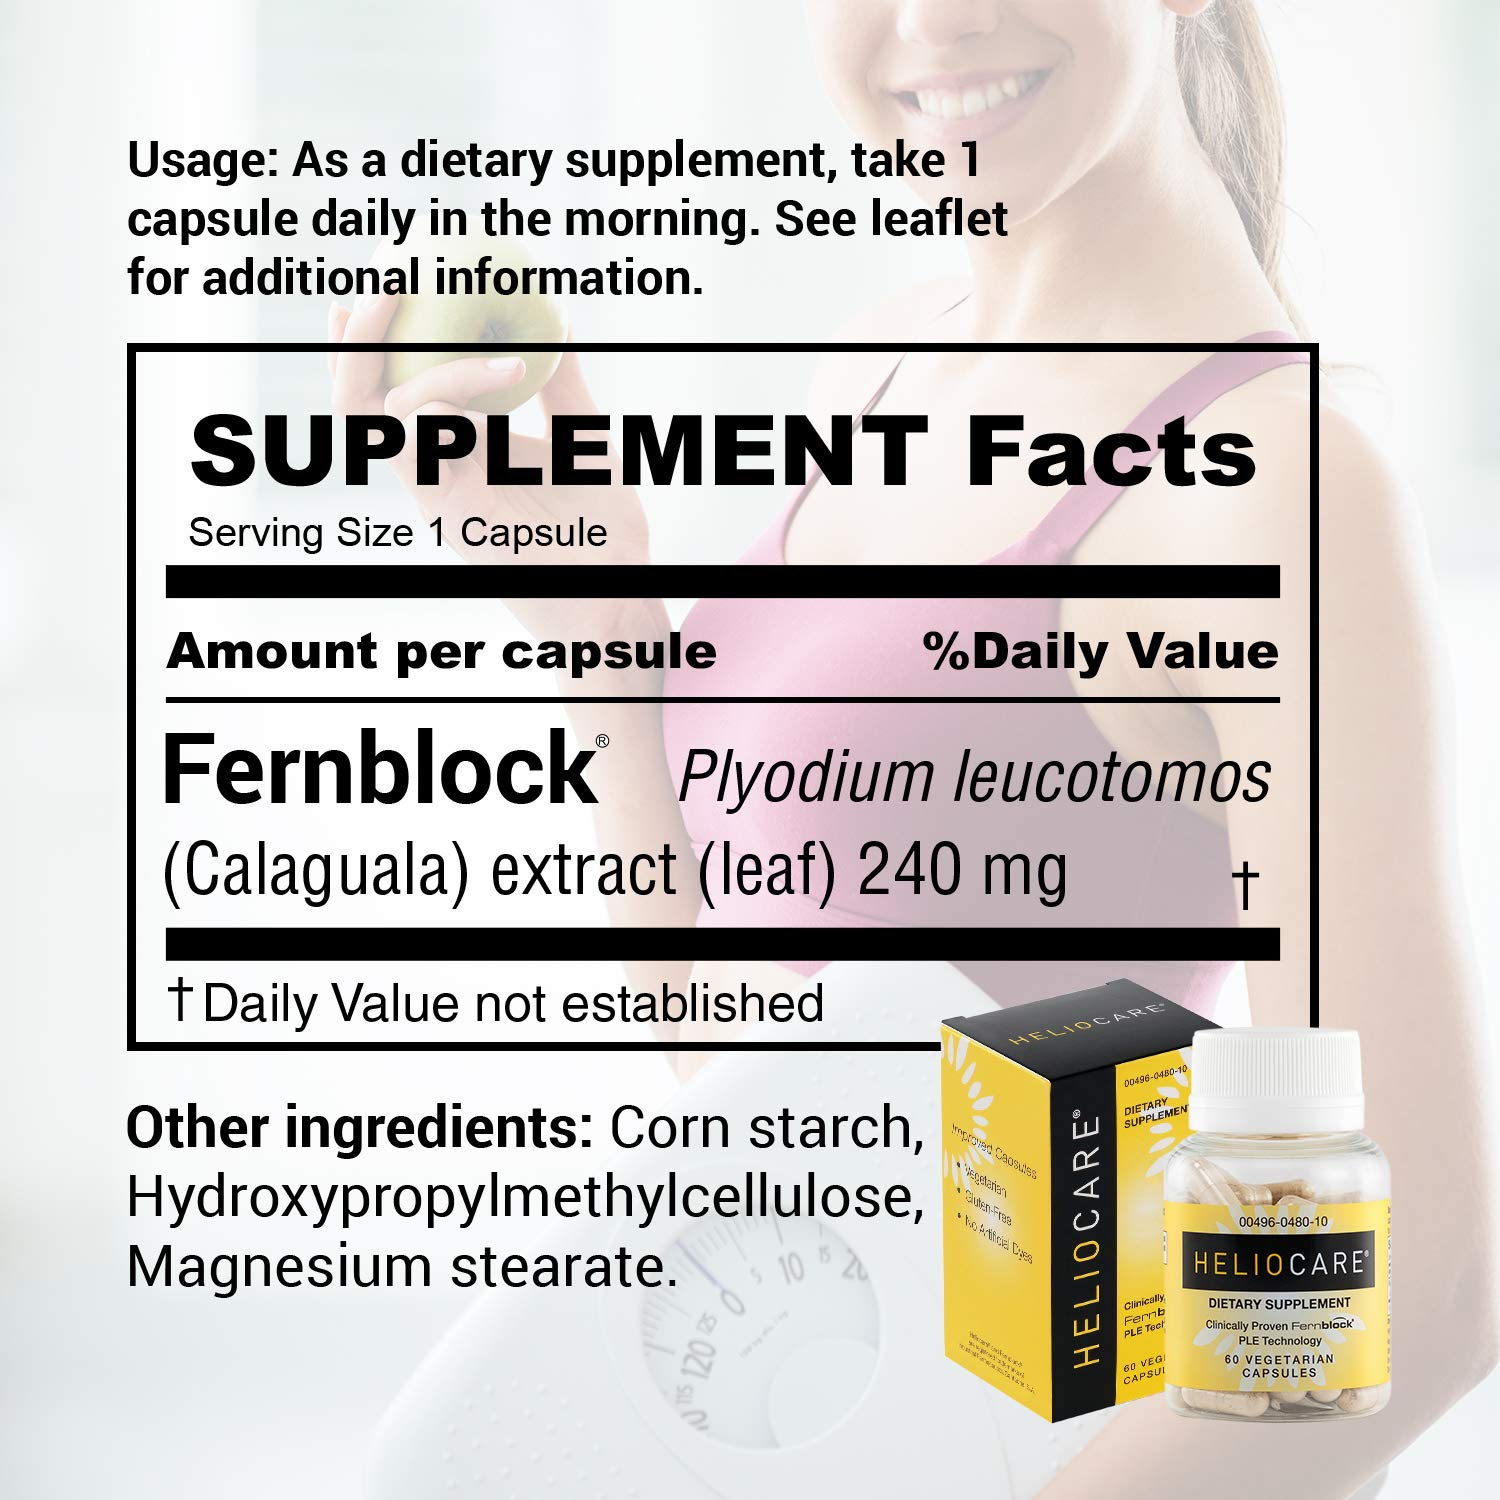 Amazon.com: Heliocare Skin Care Dietary Supplement: 240 mg ...